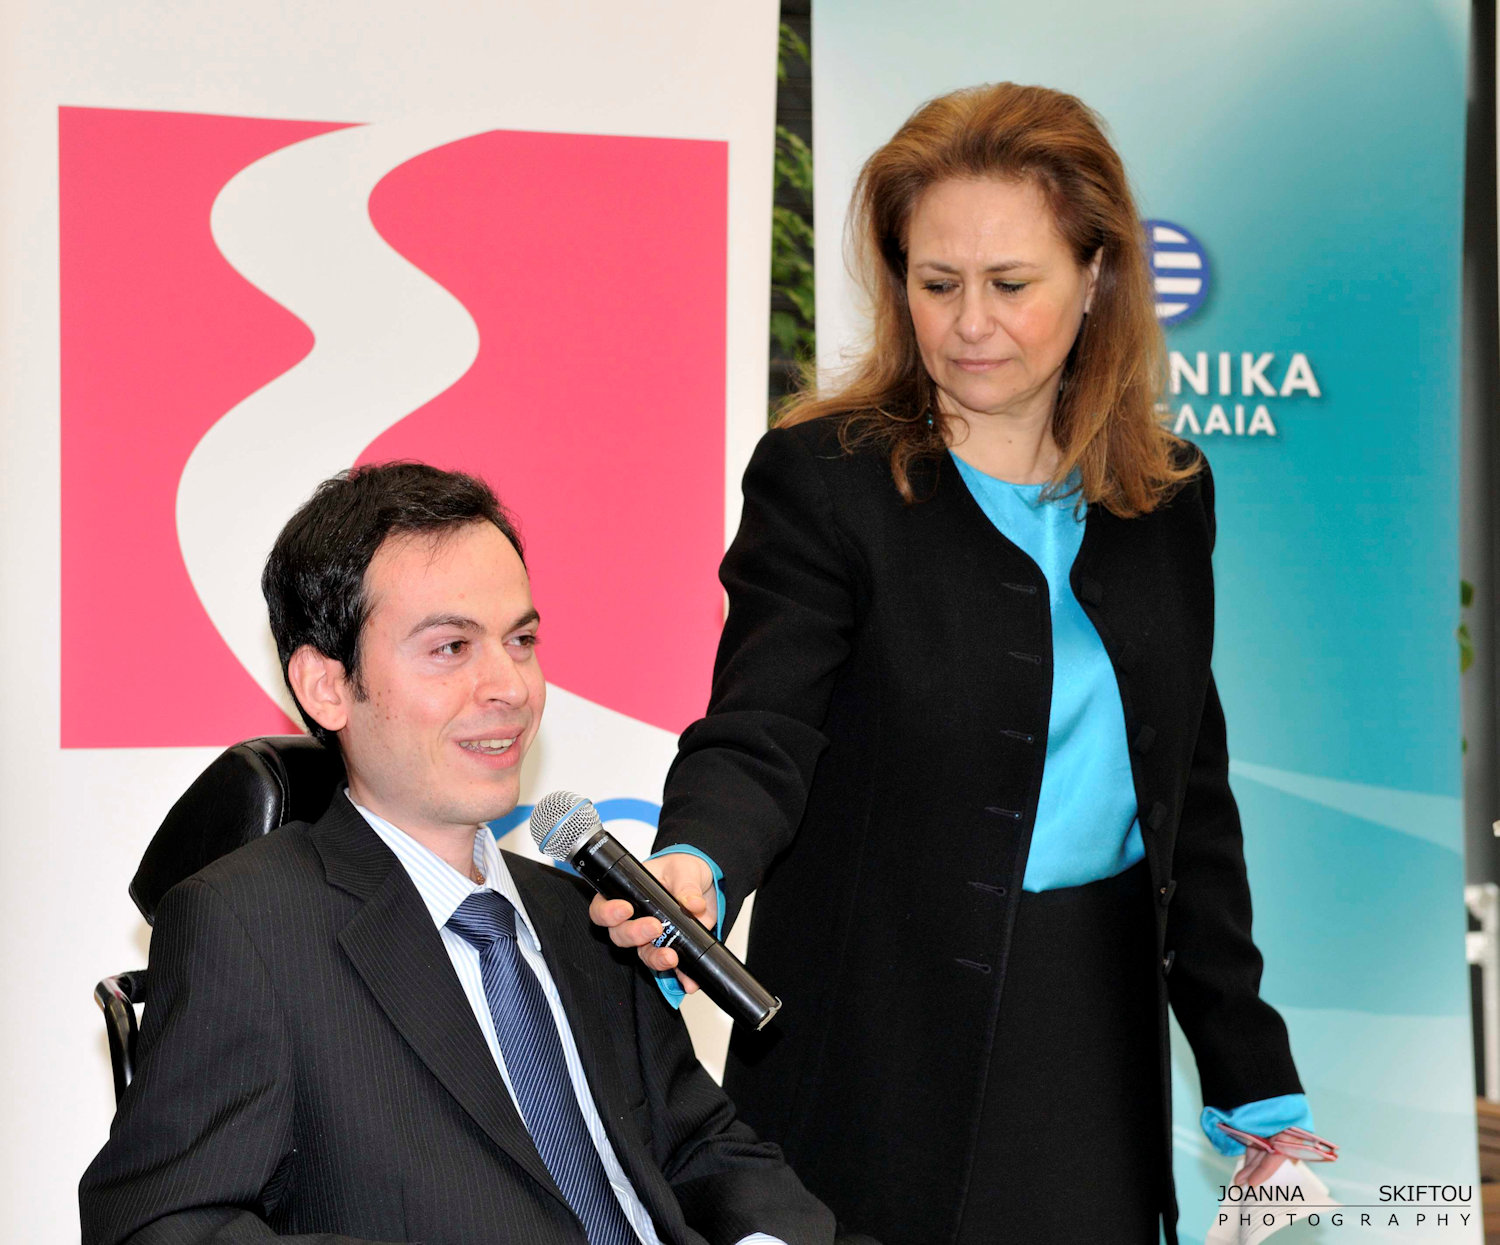 Corporate Social Responsibility - CSR - photo by Joanna Skiftou